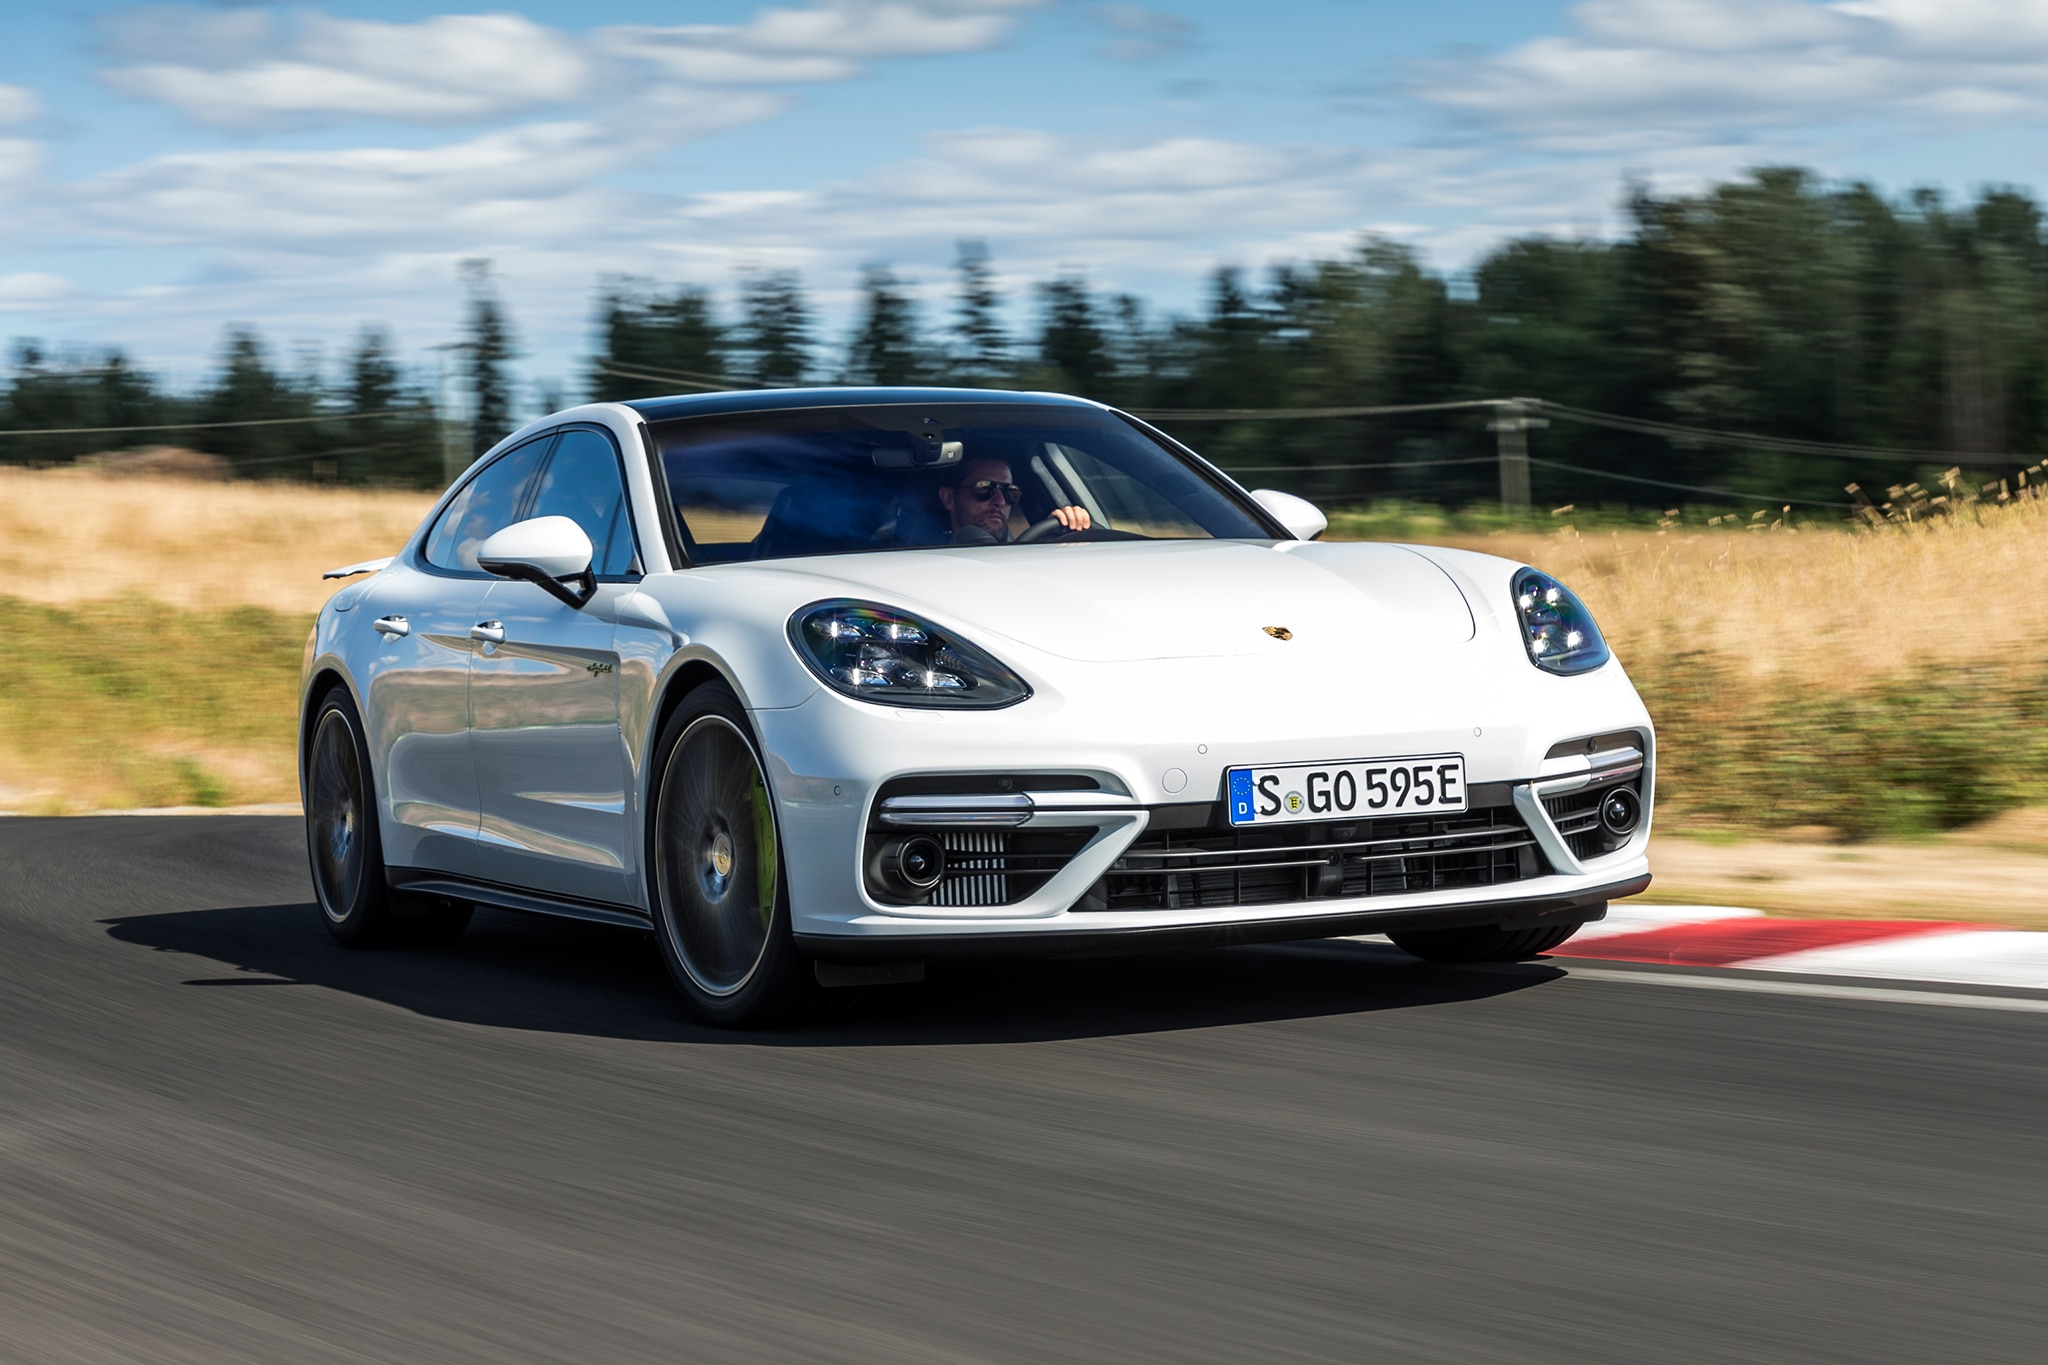 2018 Porsche Panamera Turbo S E Hybrid Front Three Quarter In Motion 12